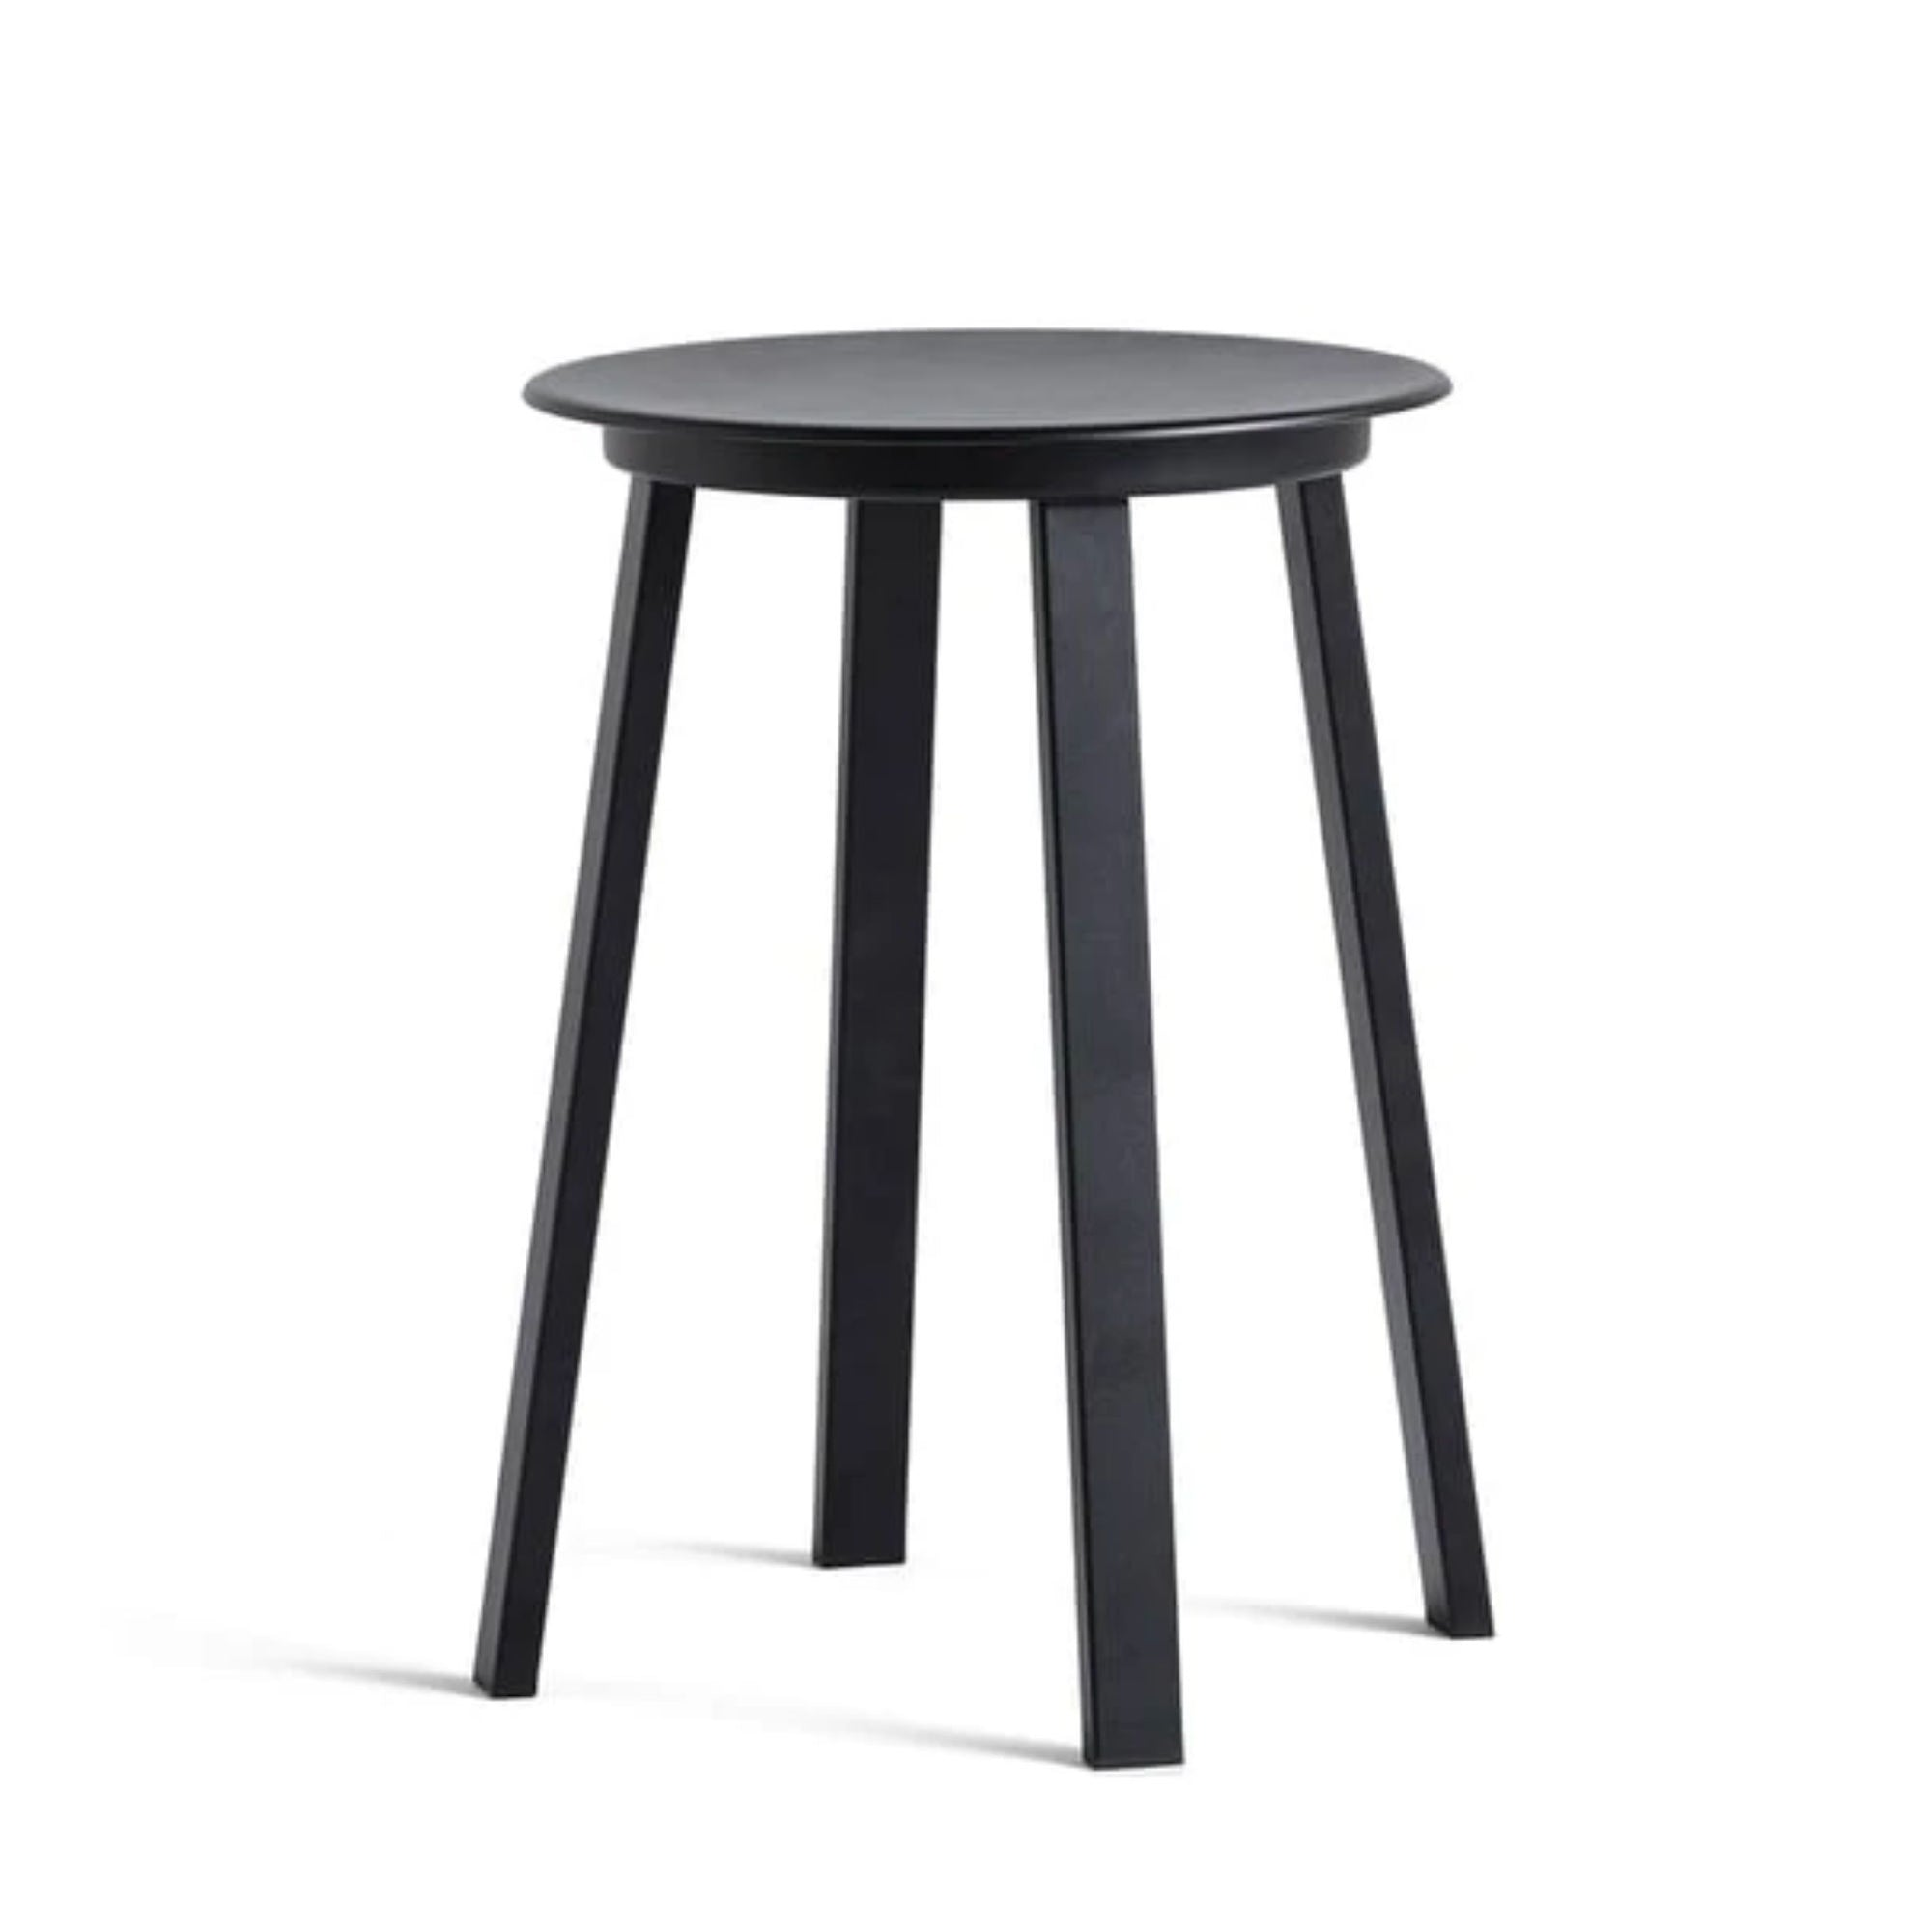 HAY Revolver stool, Black - Swivel